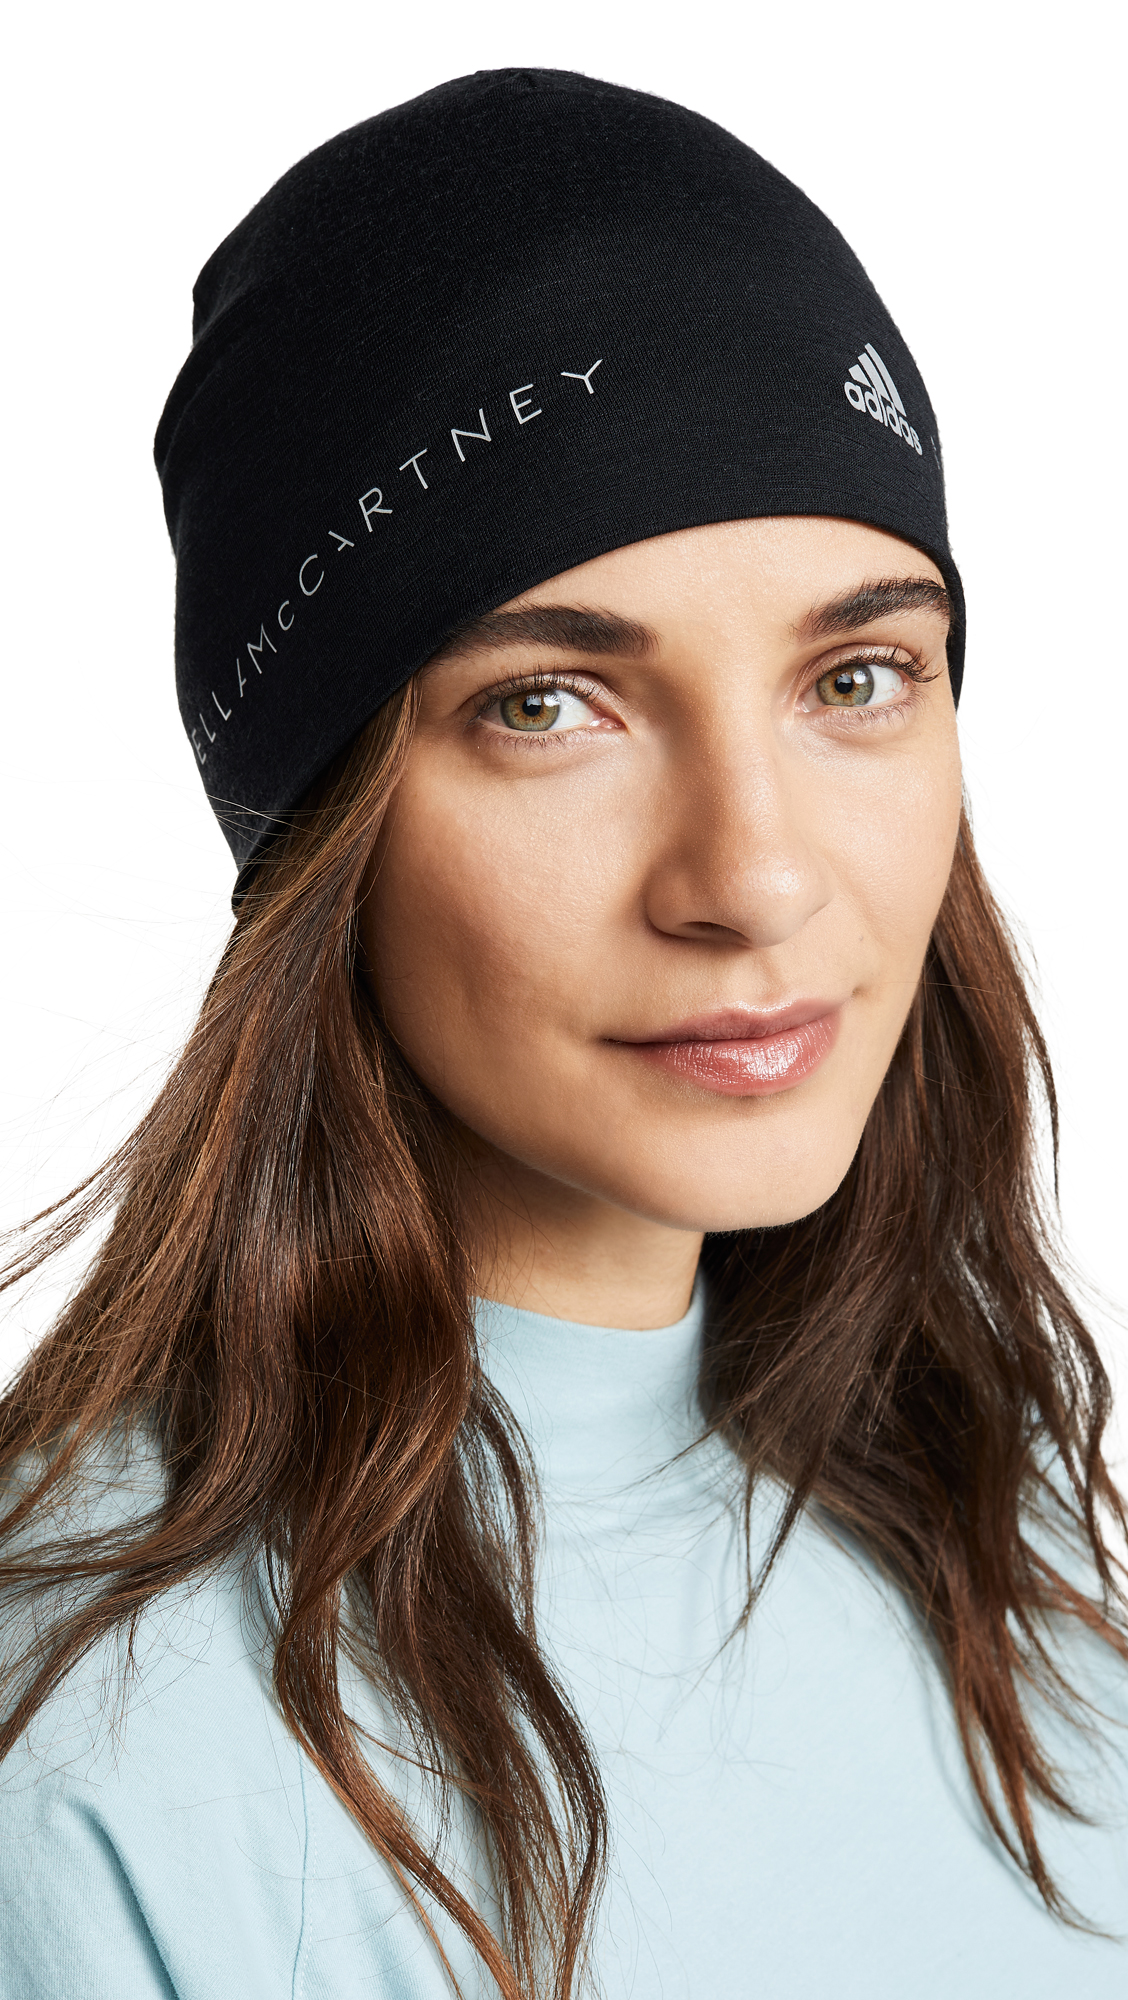 ddbb68ab2ee ADIDAS BY STELLA MCCARTNEY RUNNING BEANIE HAT